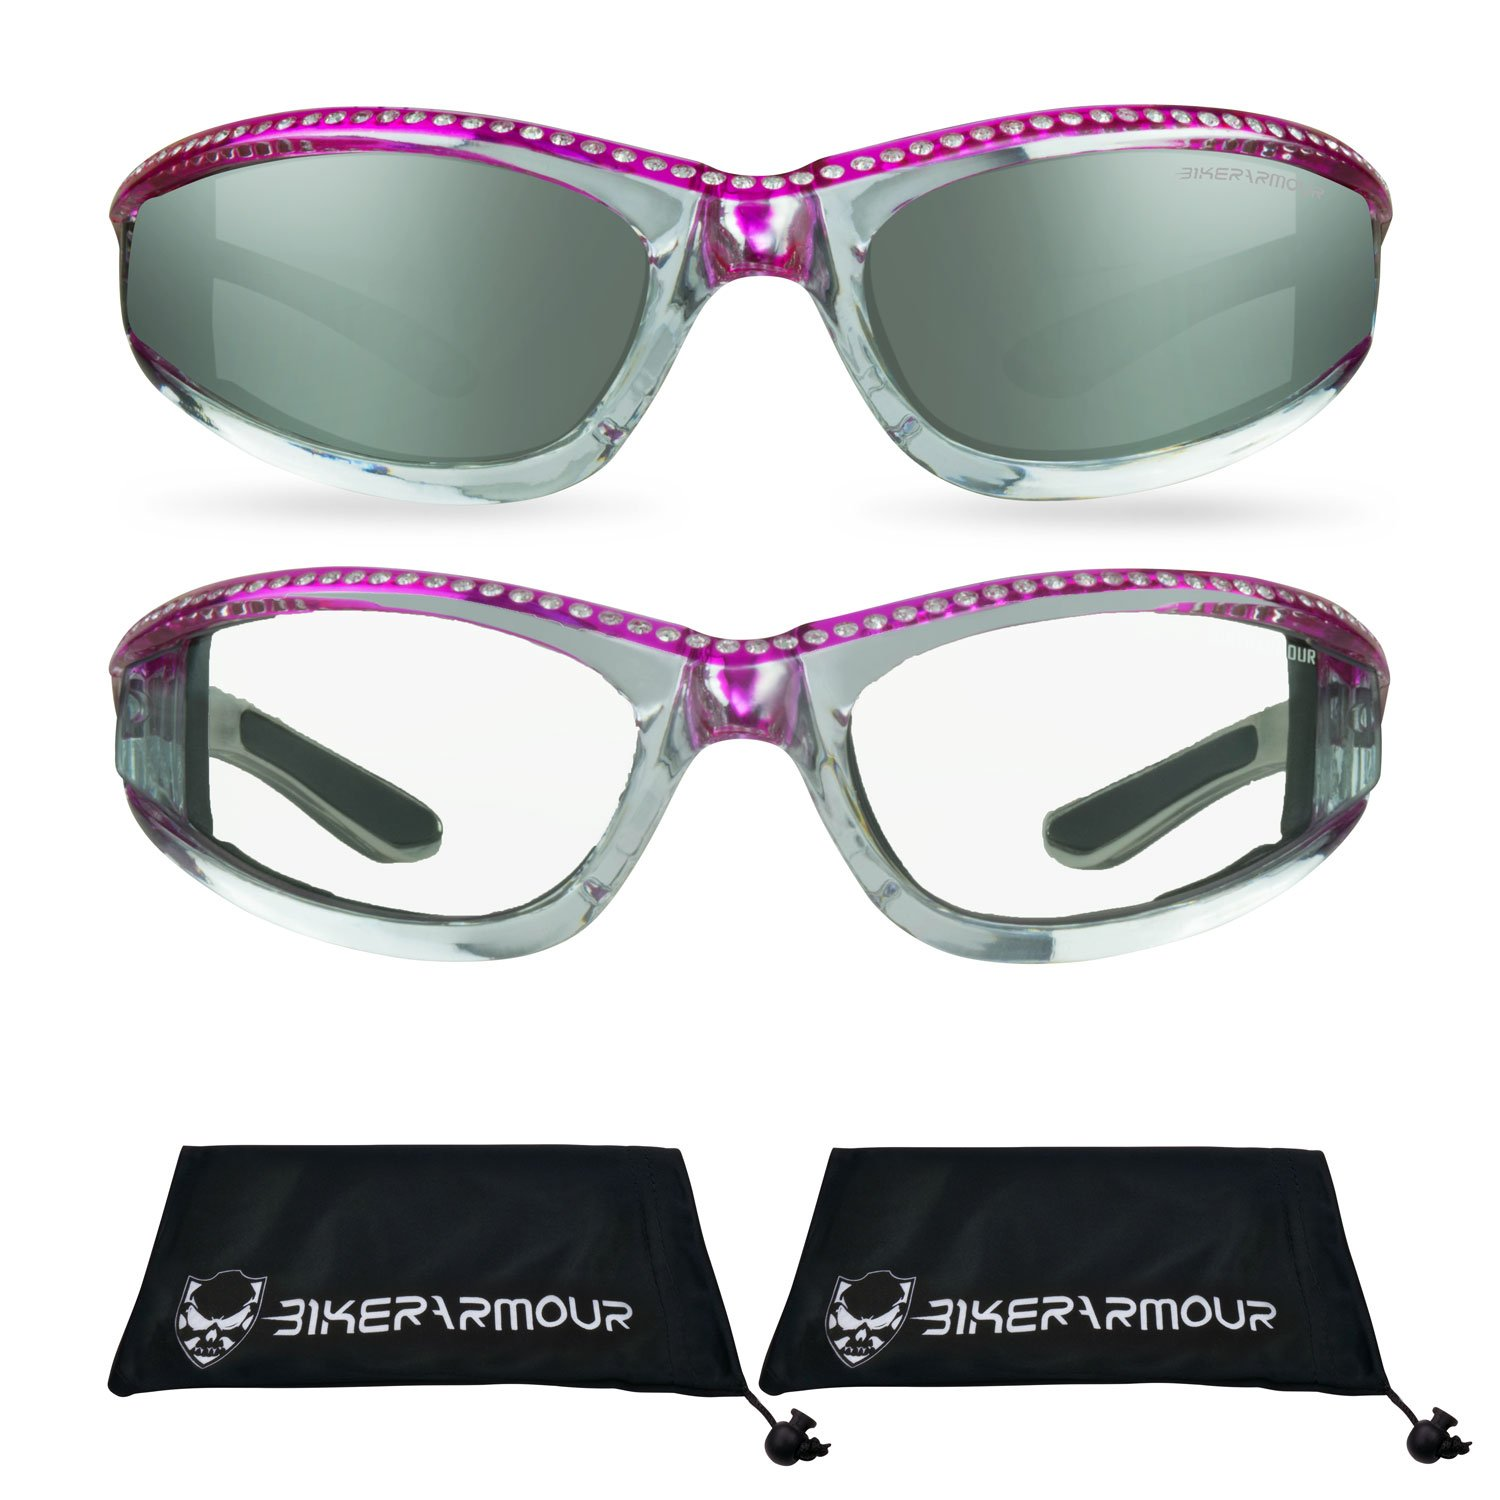 84e1e9e16c76 Amazon.com  Chrome Motorcycle Safety Glasses with Rhinestones Foam Padded  for Women (Mirror Smoke Pink + Clear Pink Combo)  Automotive